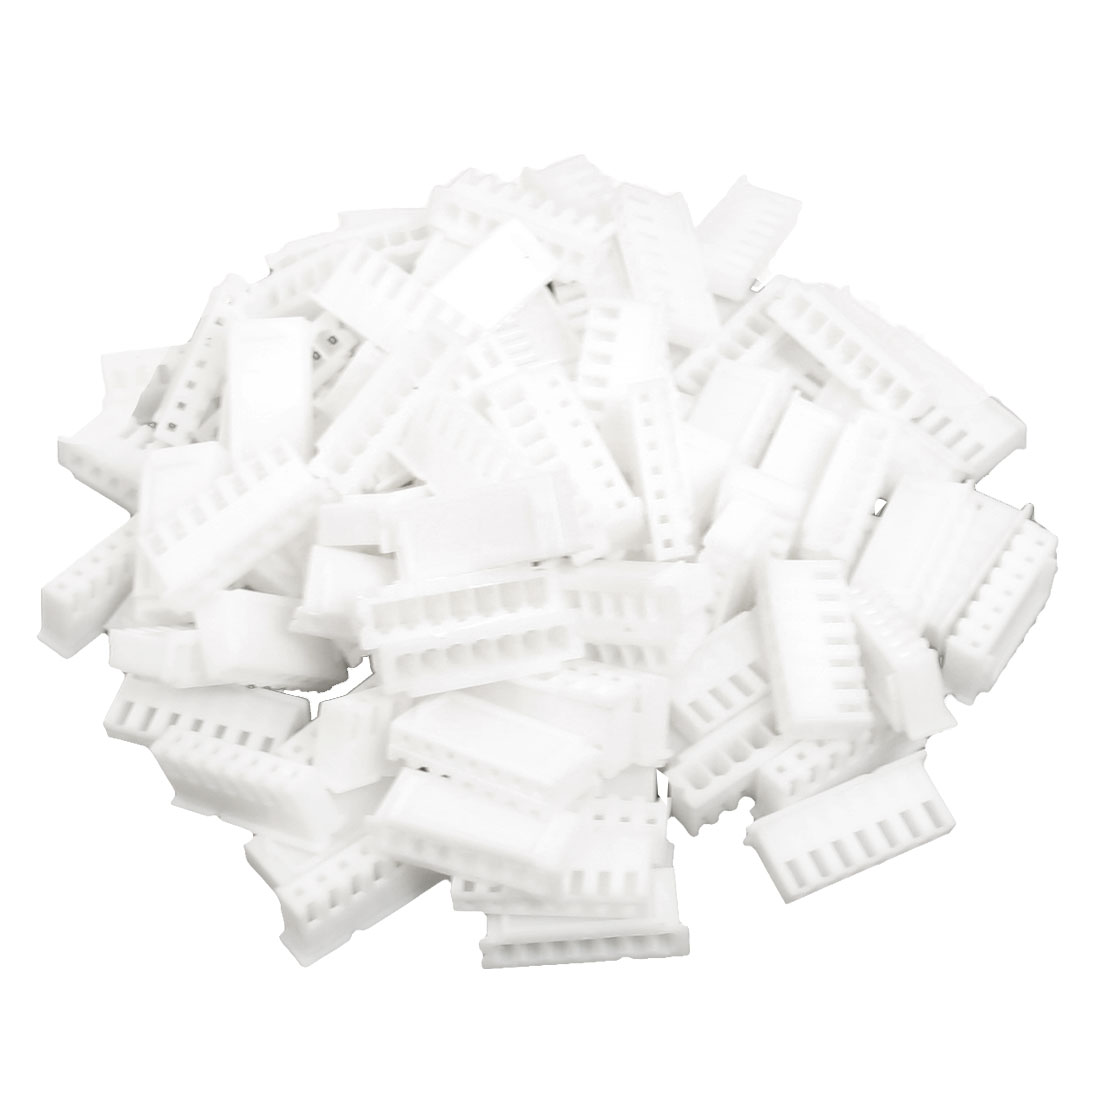 100pcs White Plastic CH 2.54mm Pitch 7 Position Connector Housing for 7P Crimp Terminal